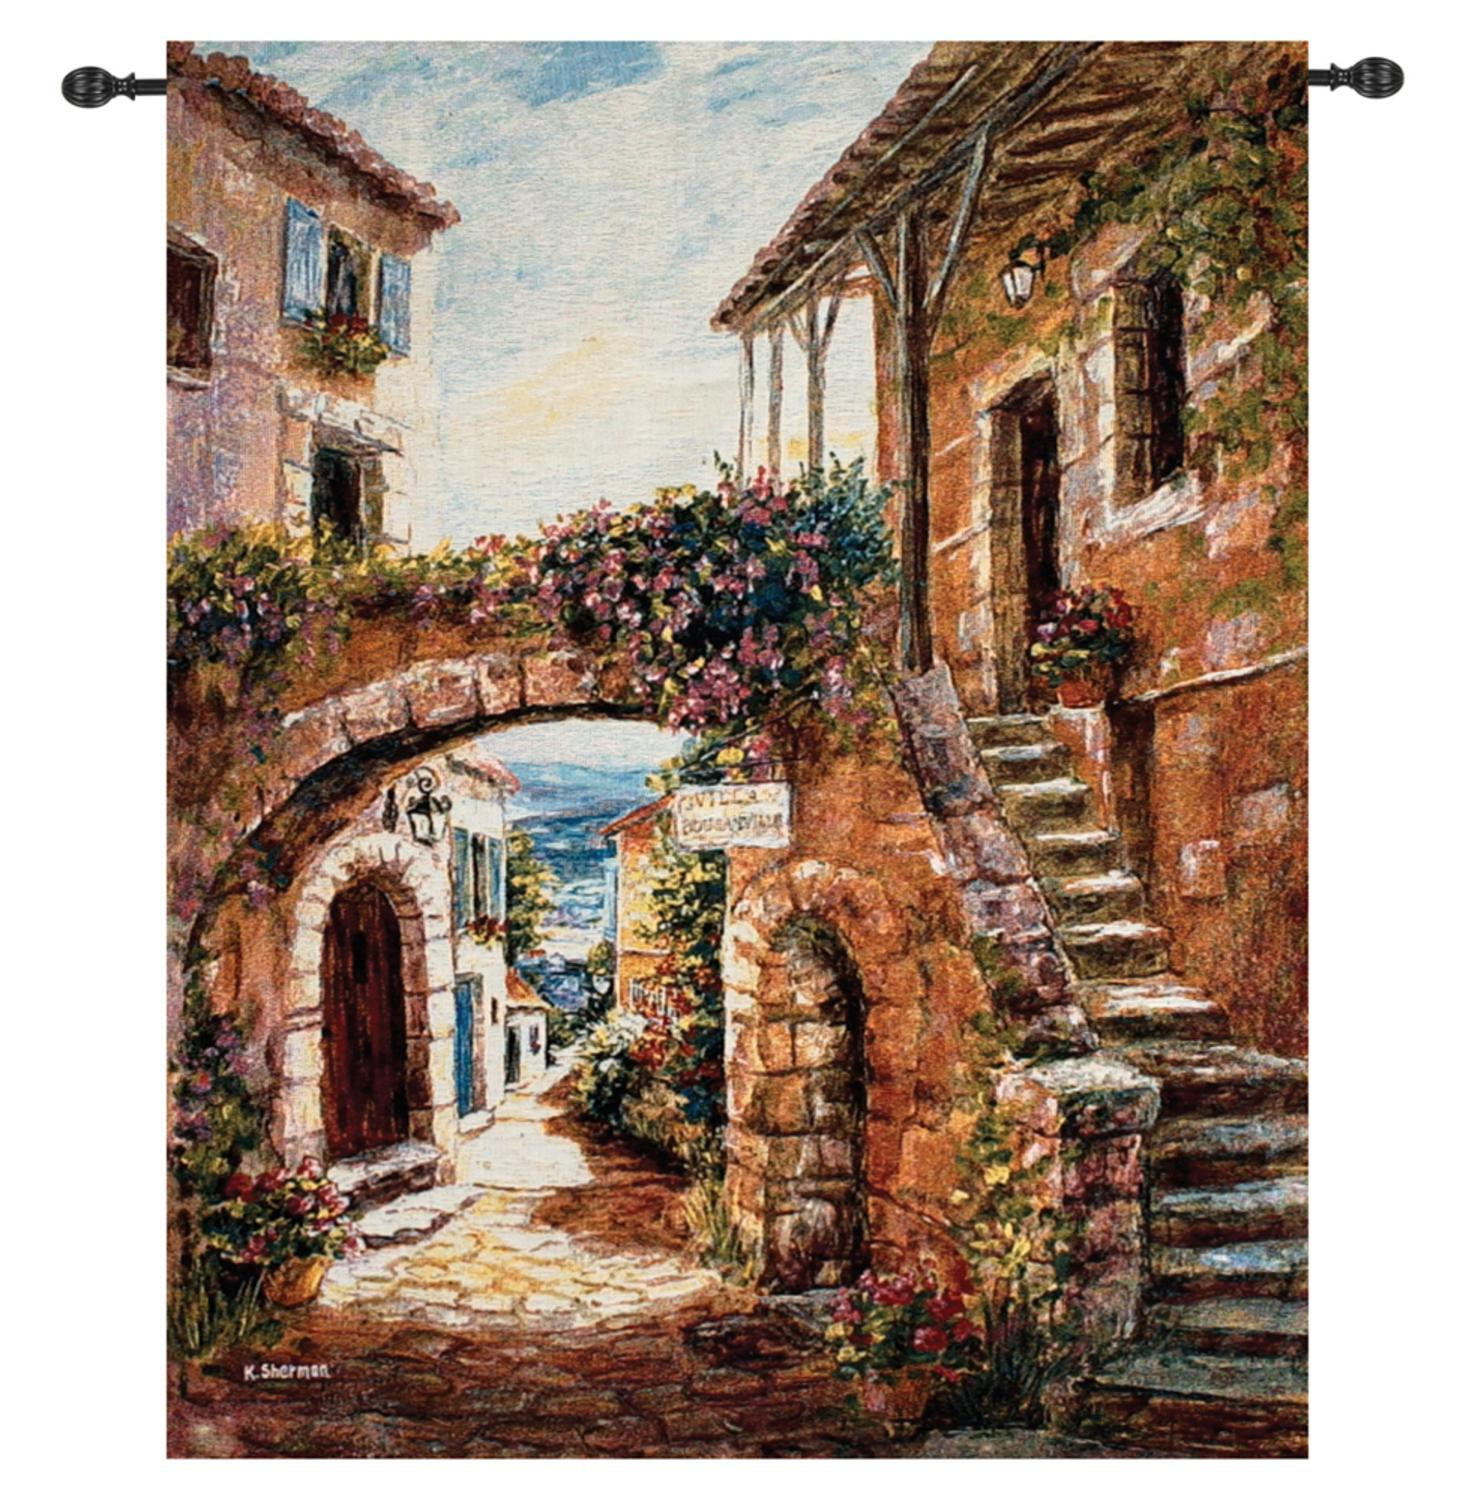 "Walk Back in Time Italian Village Cotton Wall Art Hanging Tapestry 41"" x 35"""